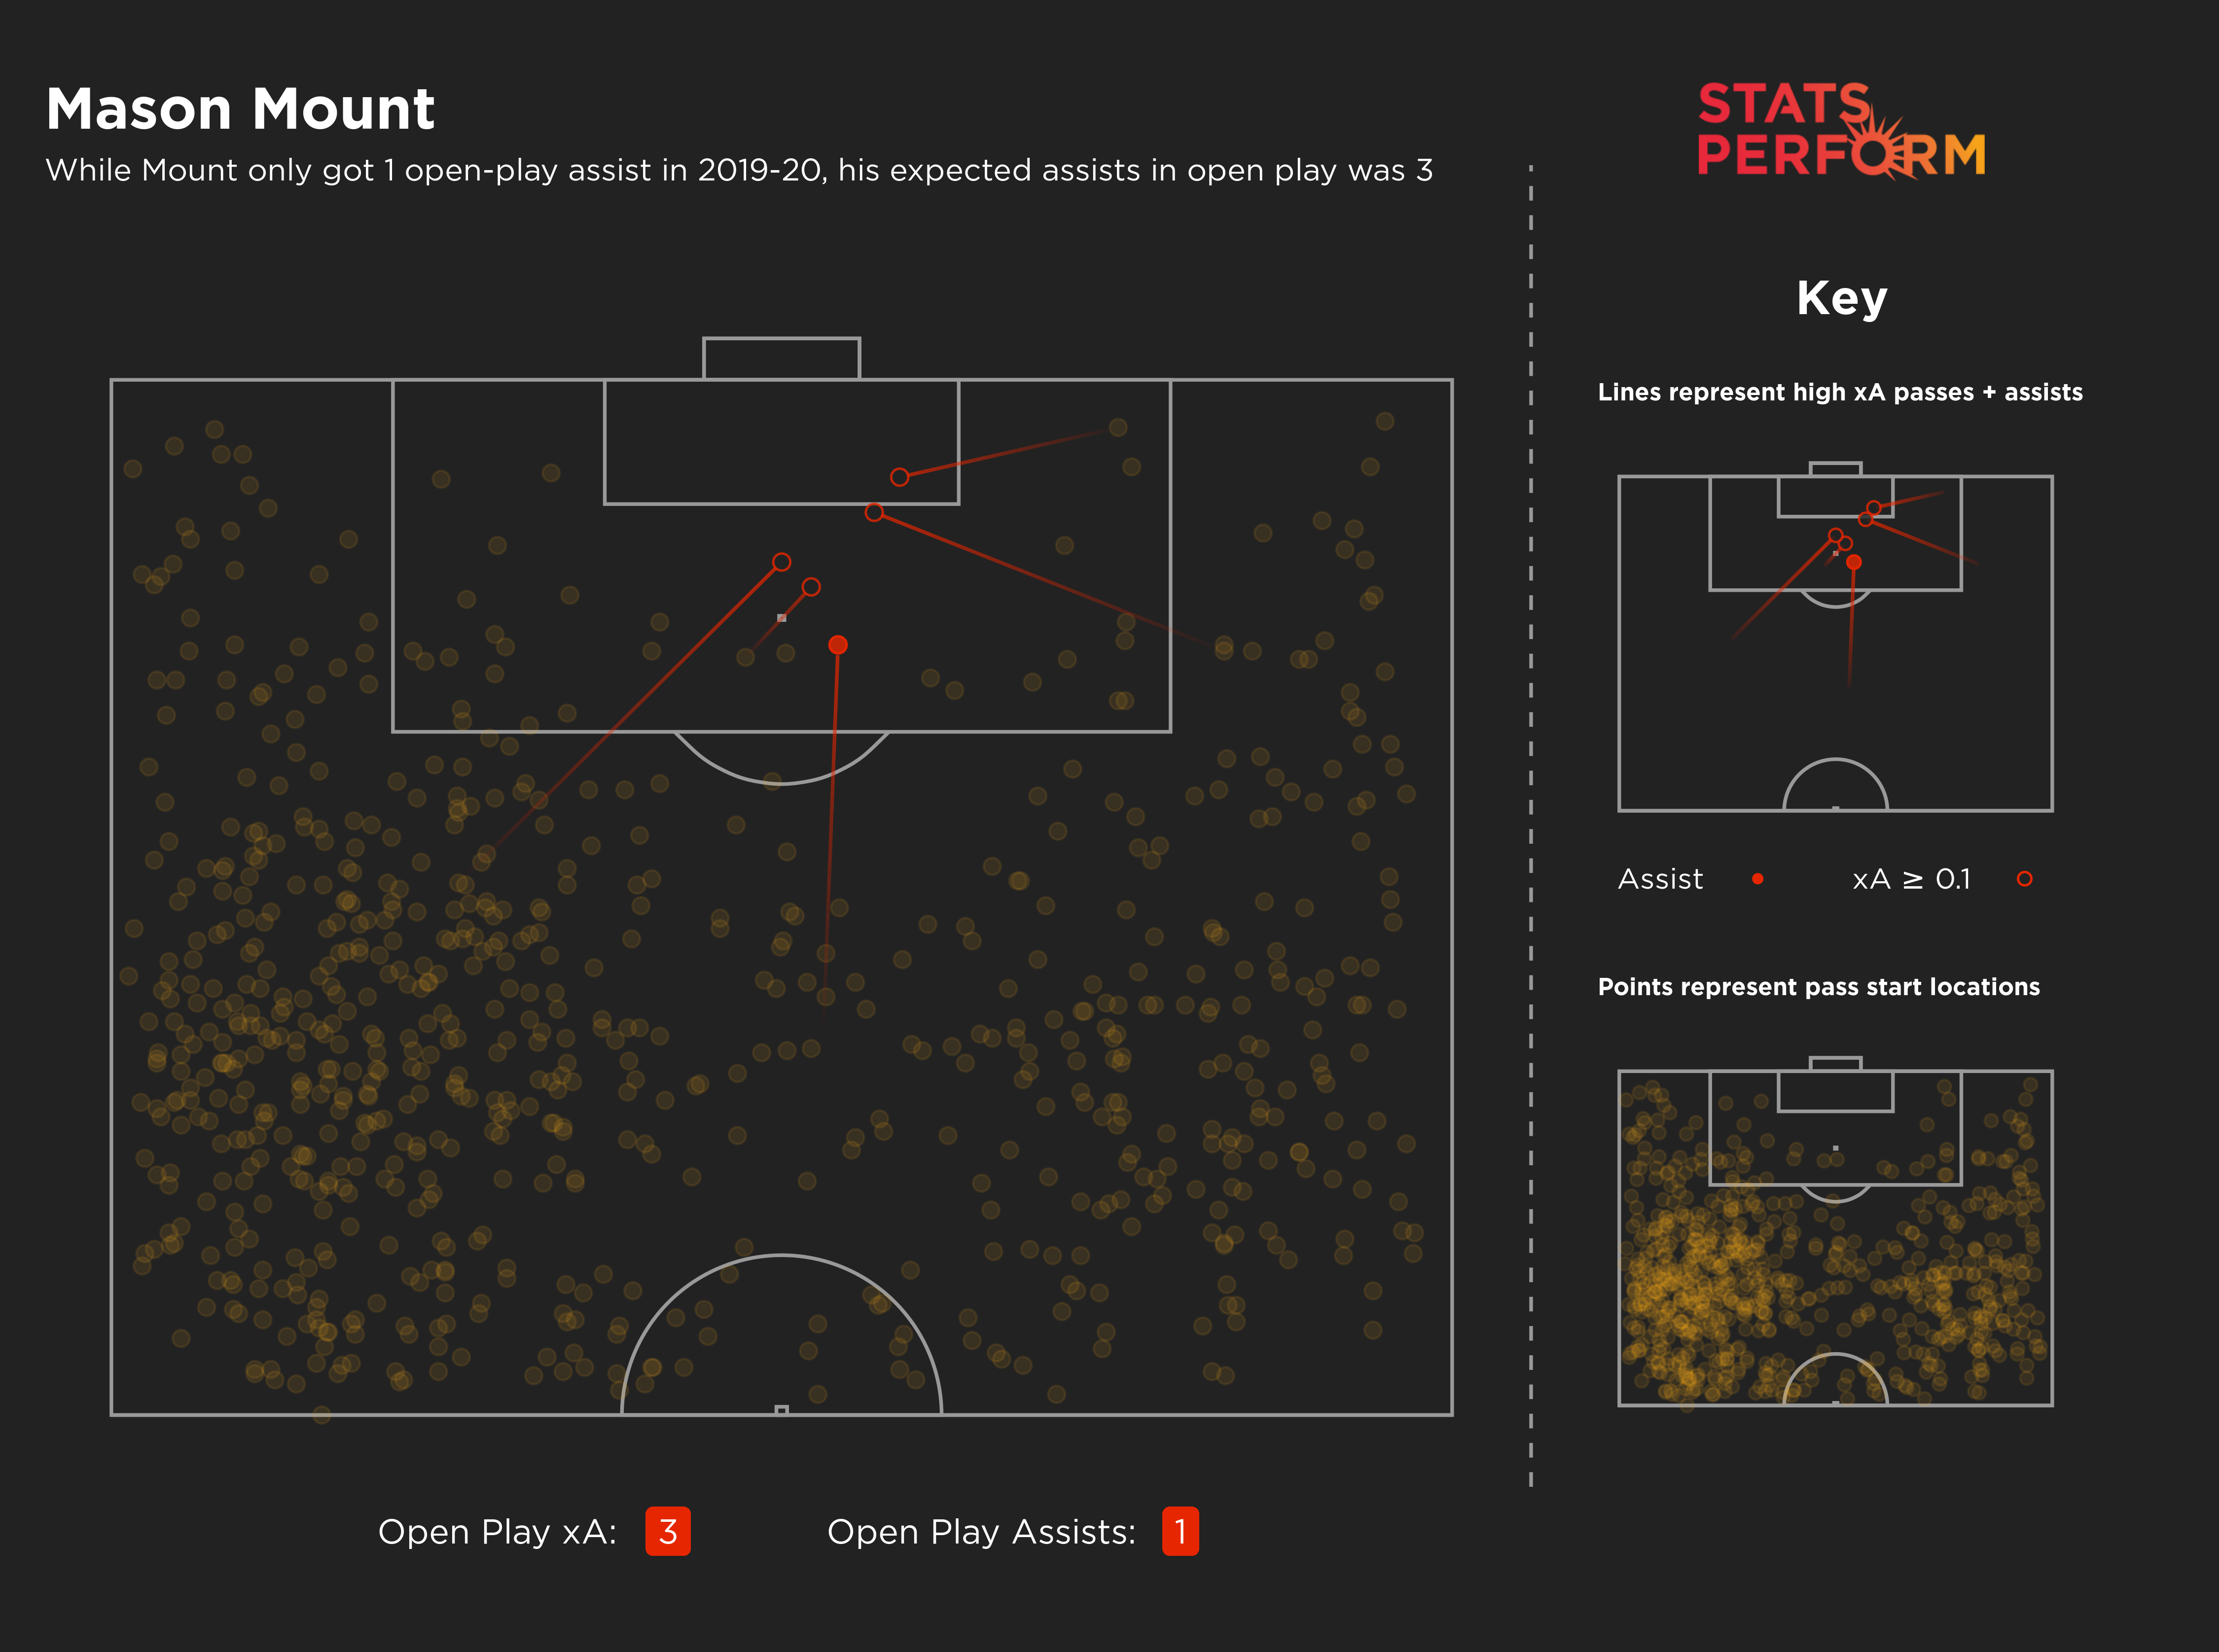 Mount only got one open play assist in 2019-20, though his xA value suggests he should have got more